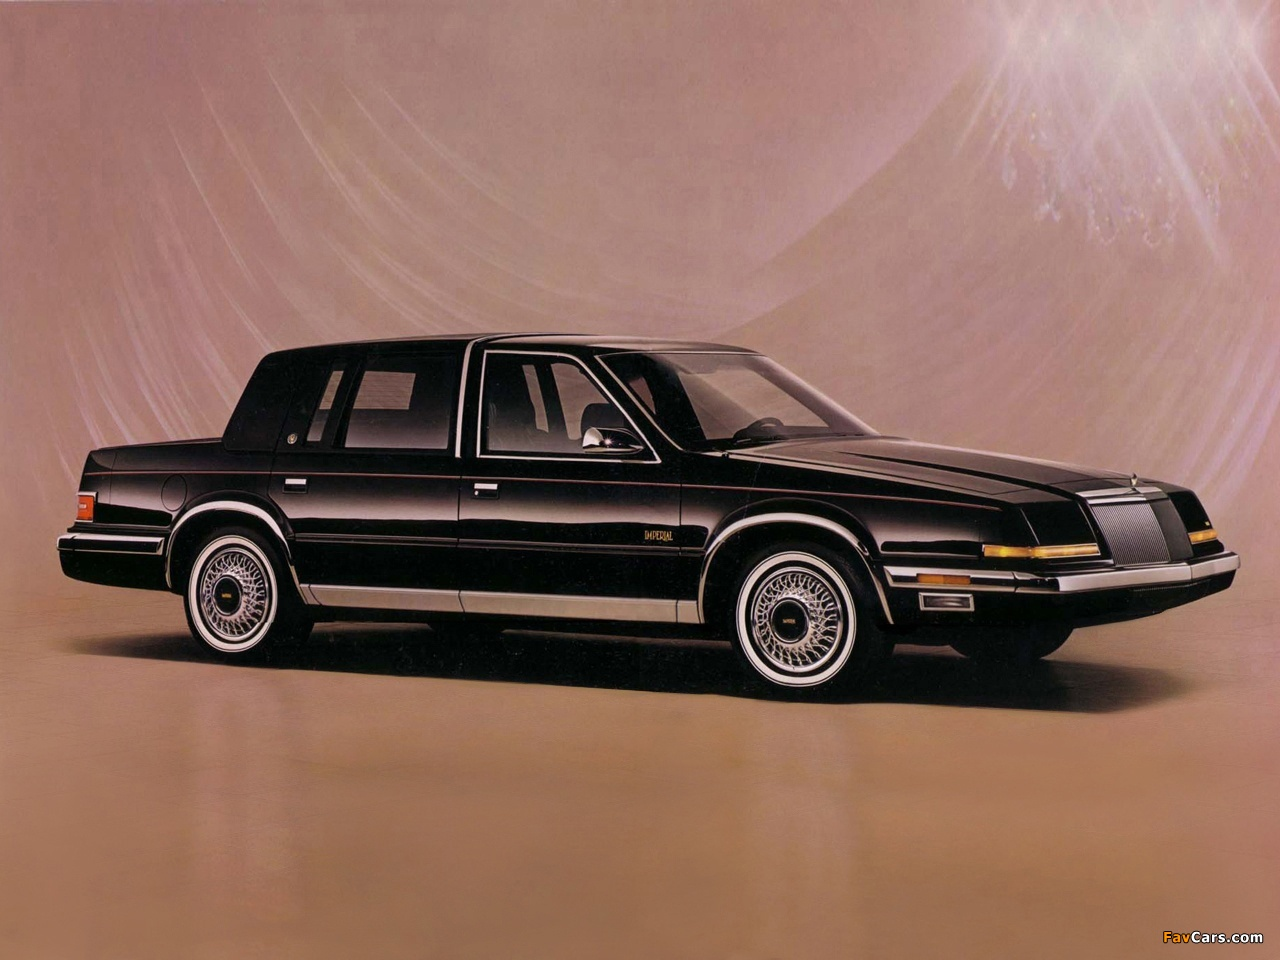 1990 Chrysler Imperial #3